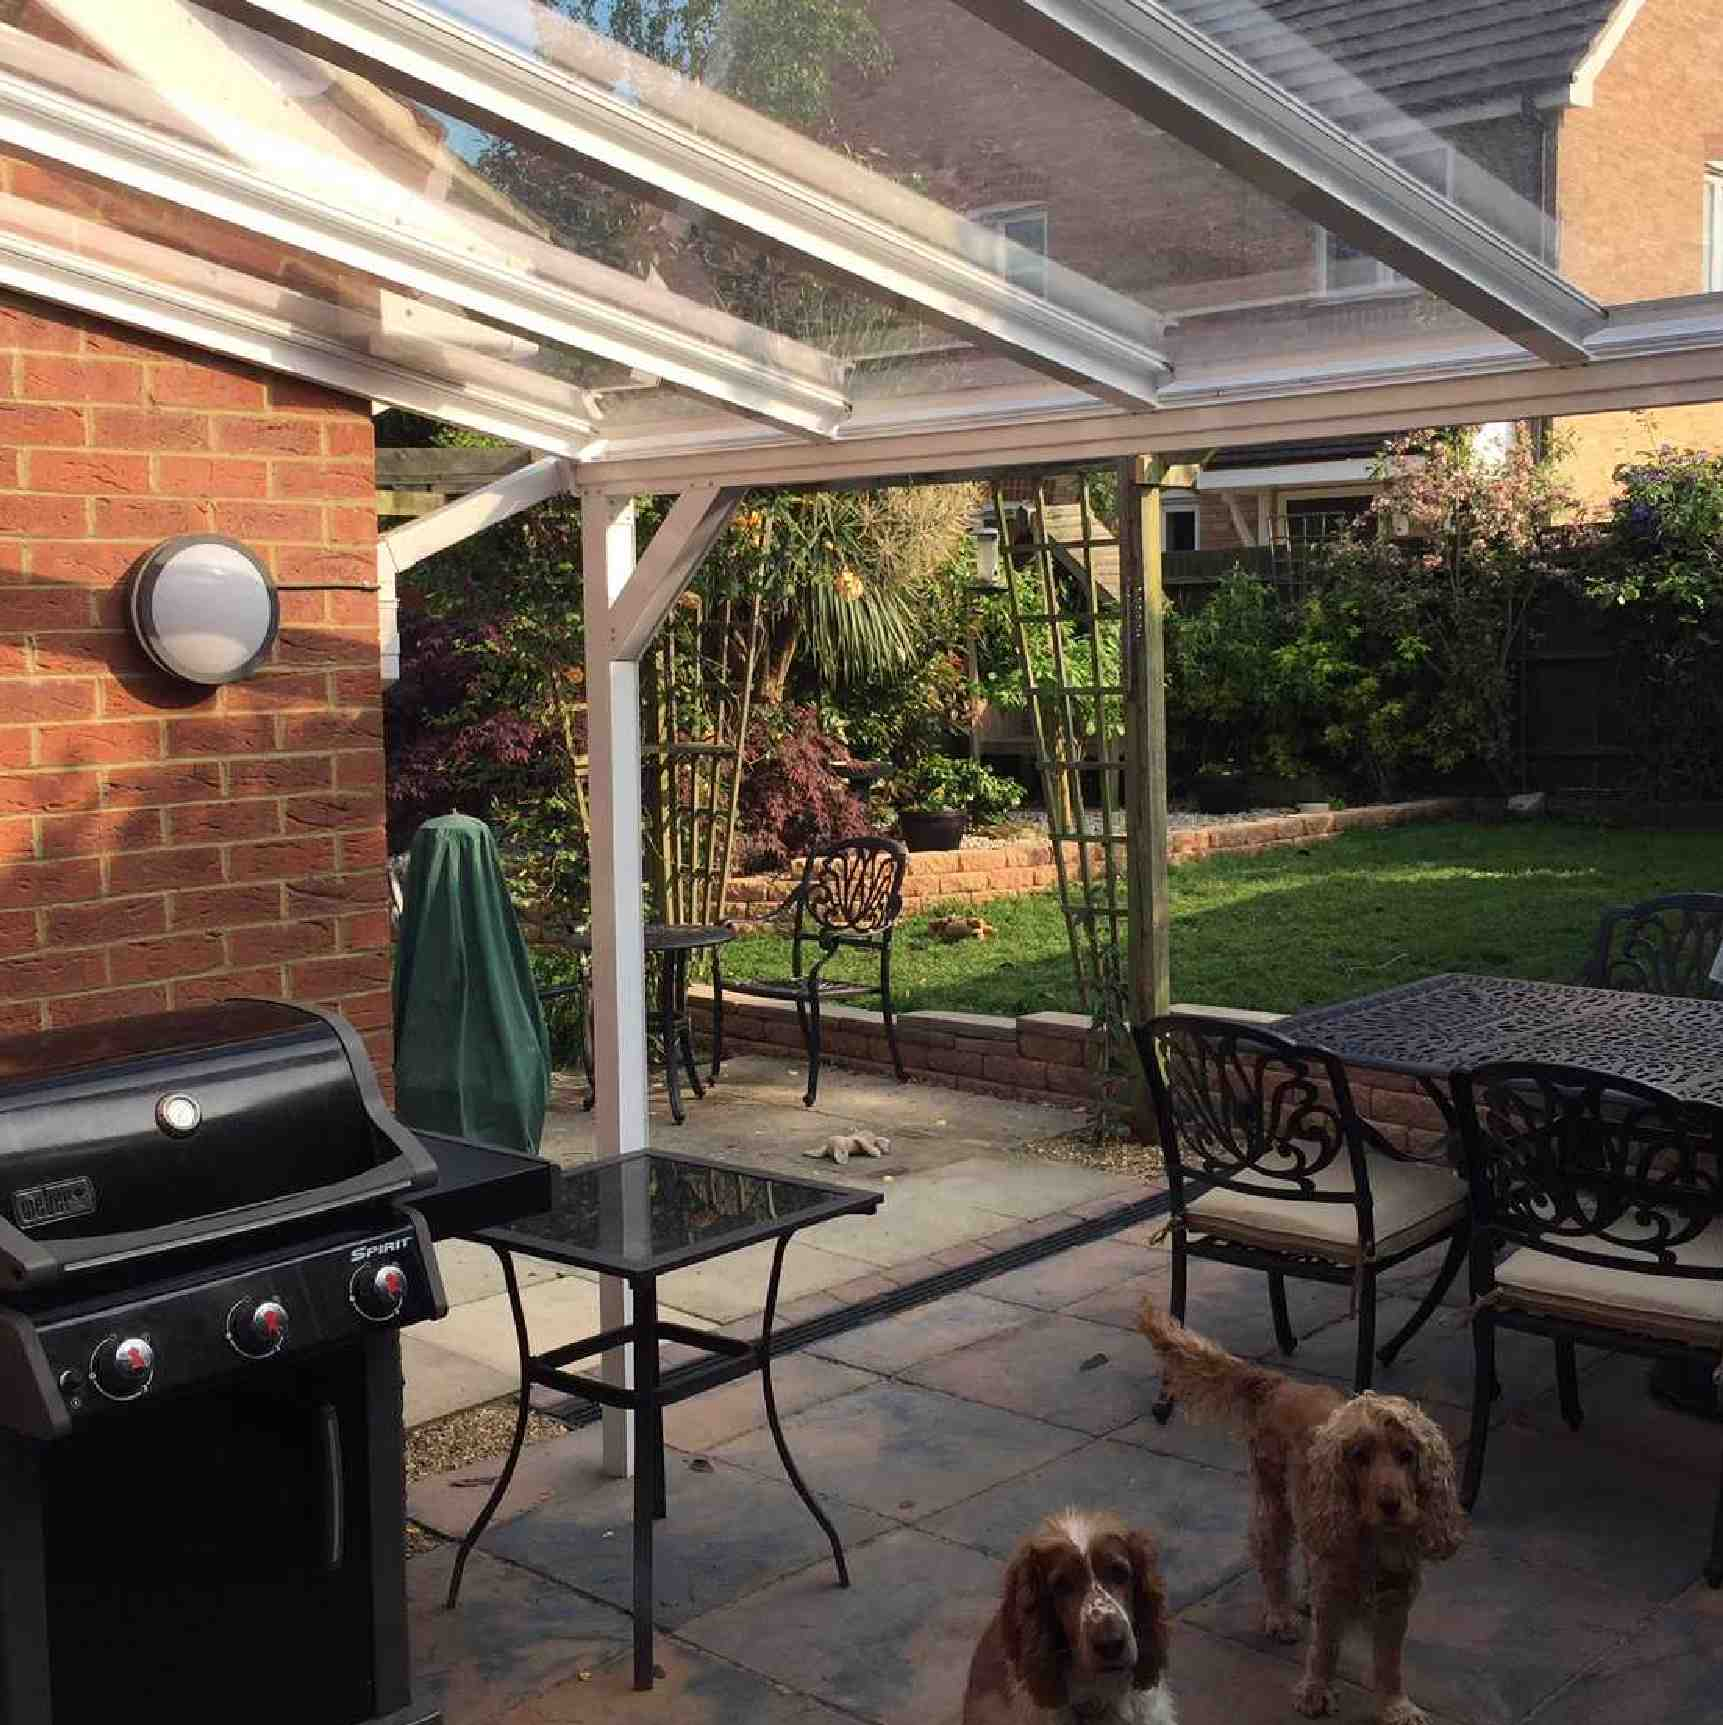 Omega Verandah with 16mm Polycarbonate Glazing - 10.2m (W) x 4.5m (P), (5) Supporting Posts